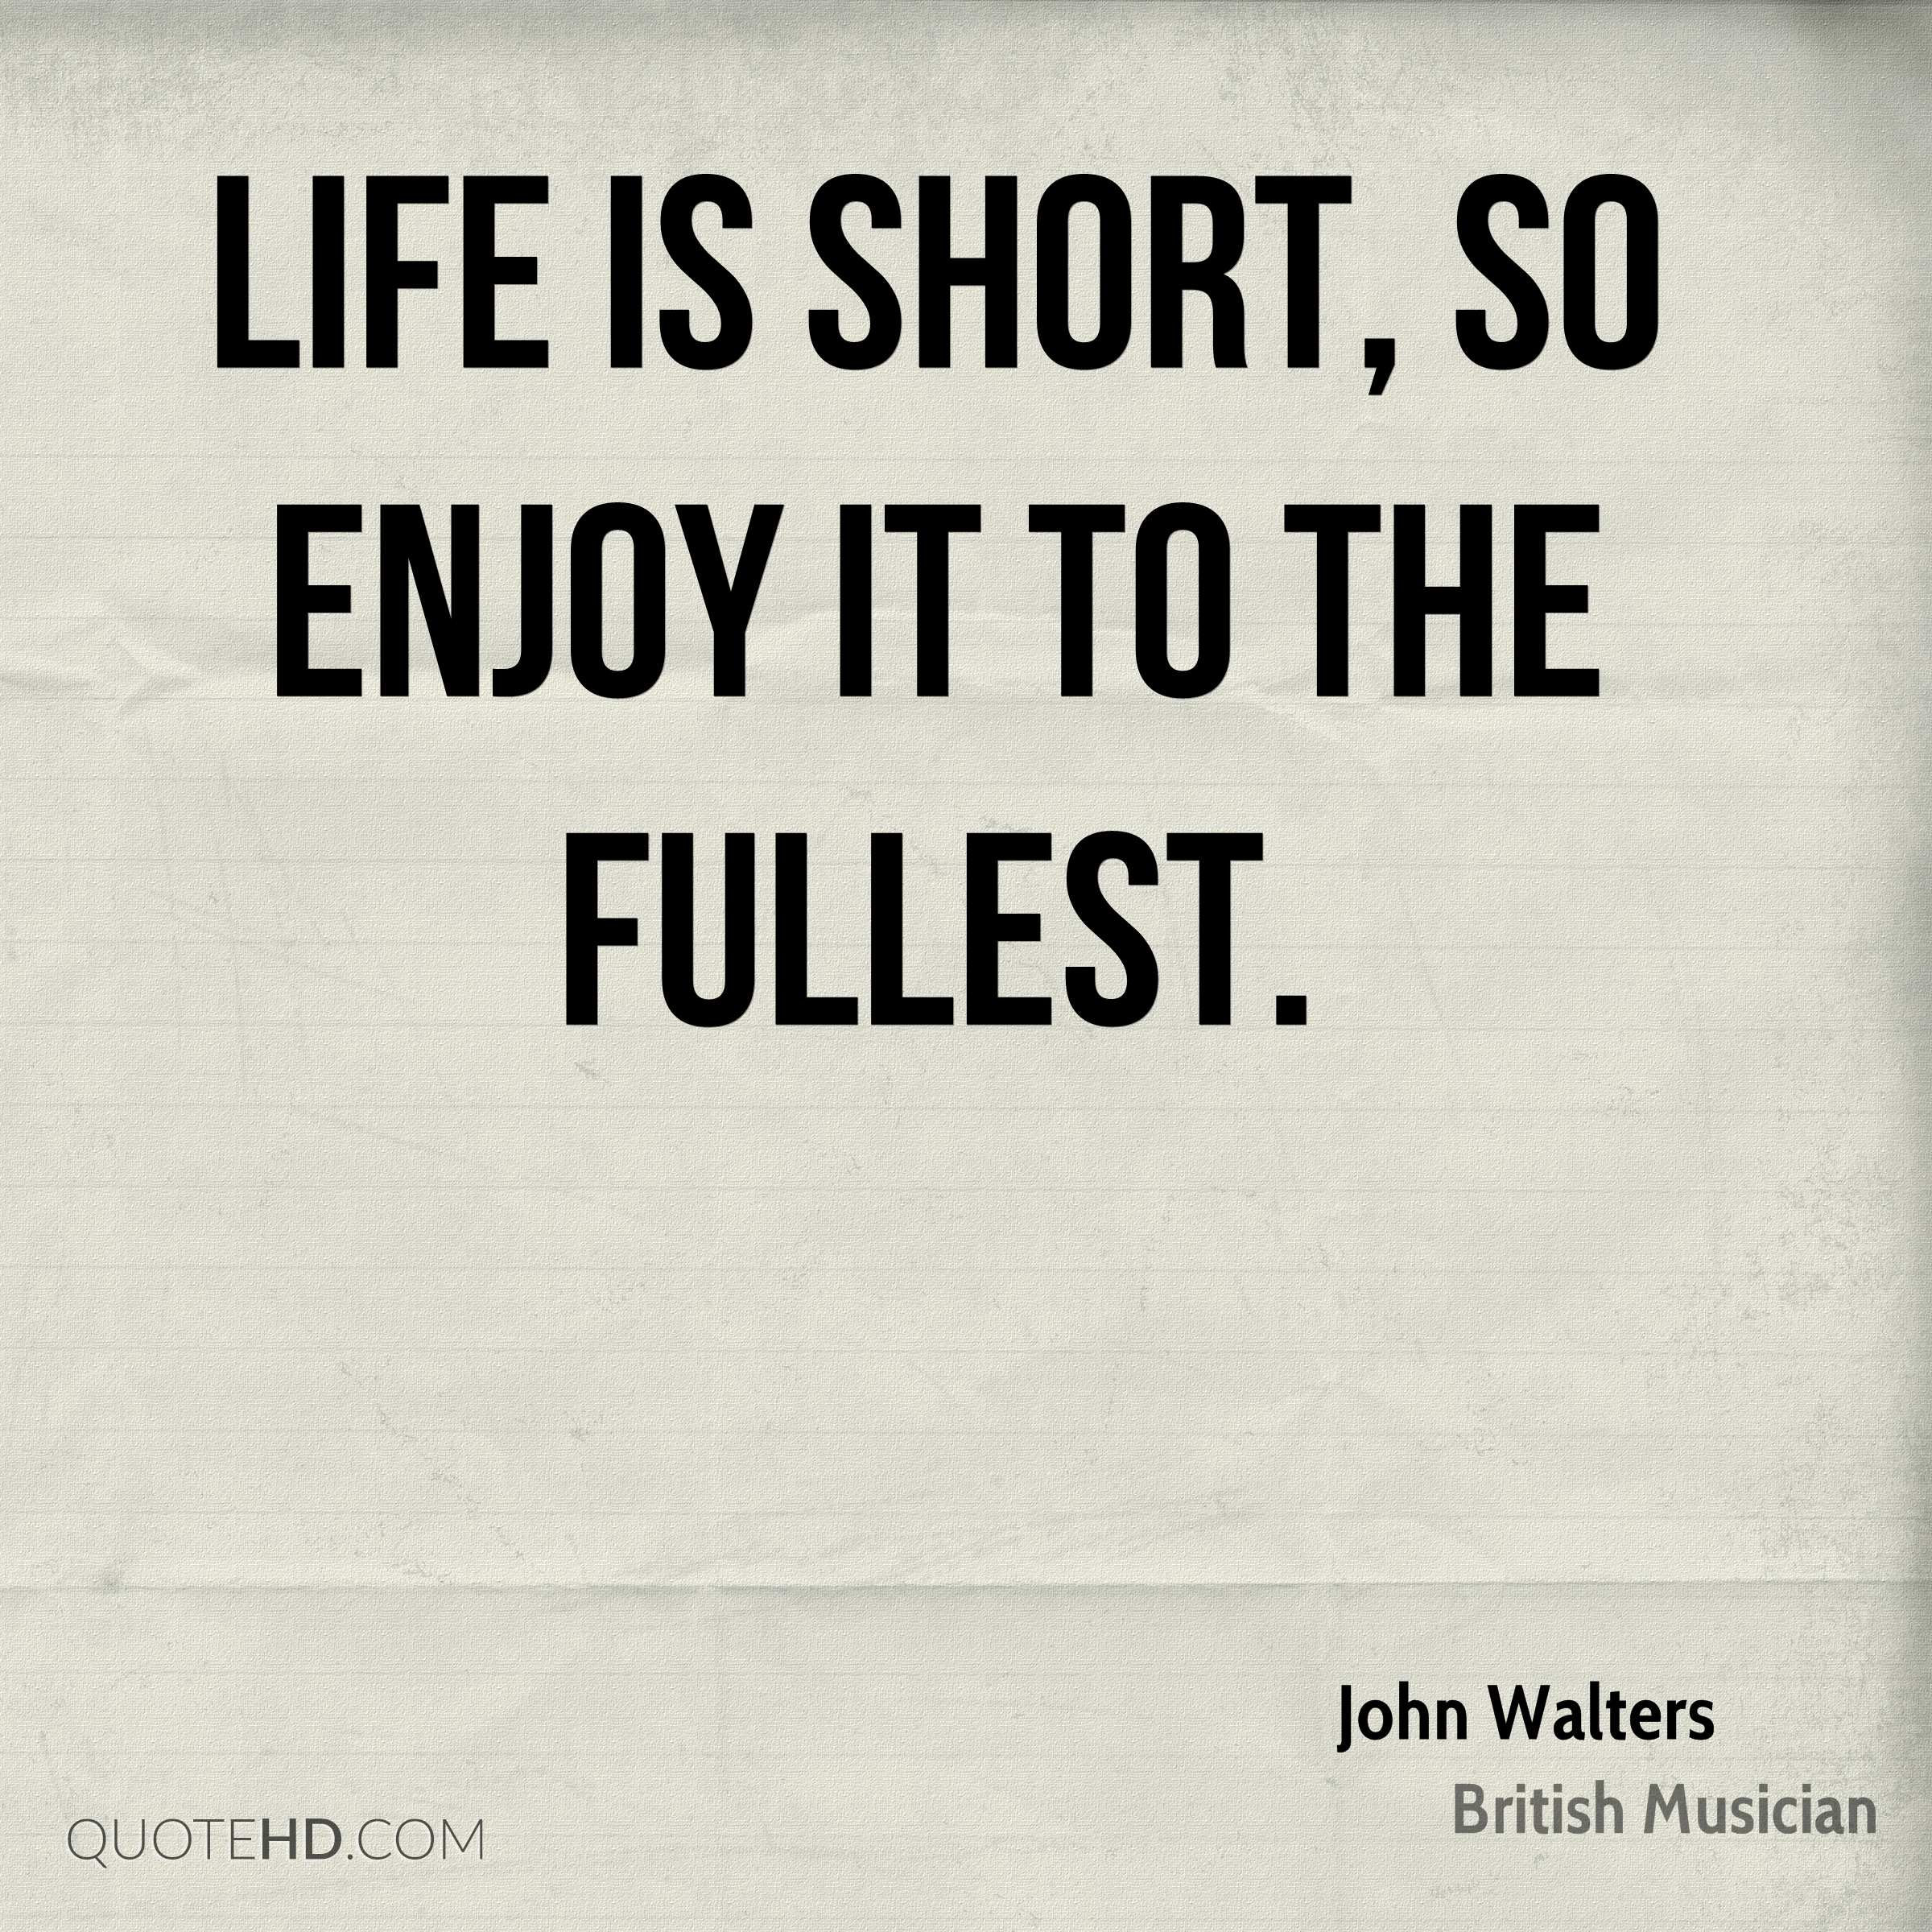 Live Life To The Fullest Quotes John Walters Quotes  Quotehd